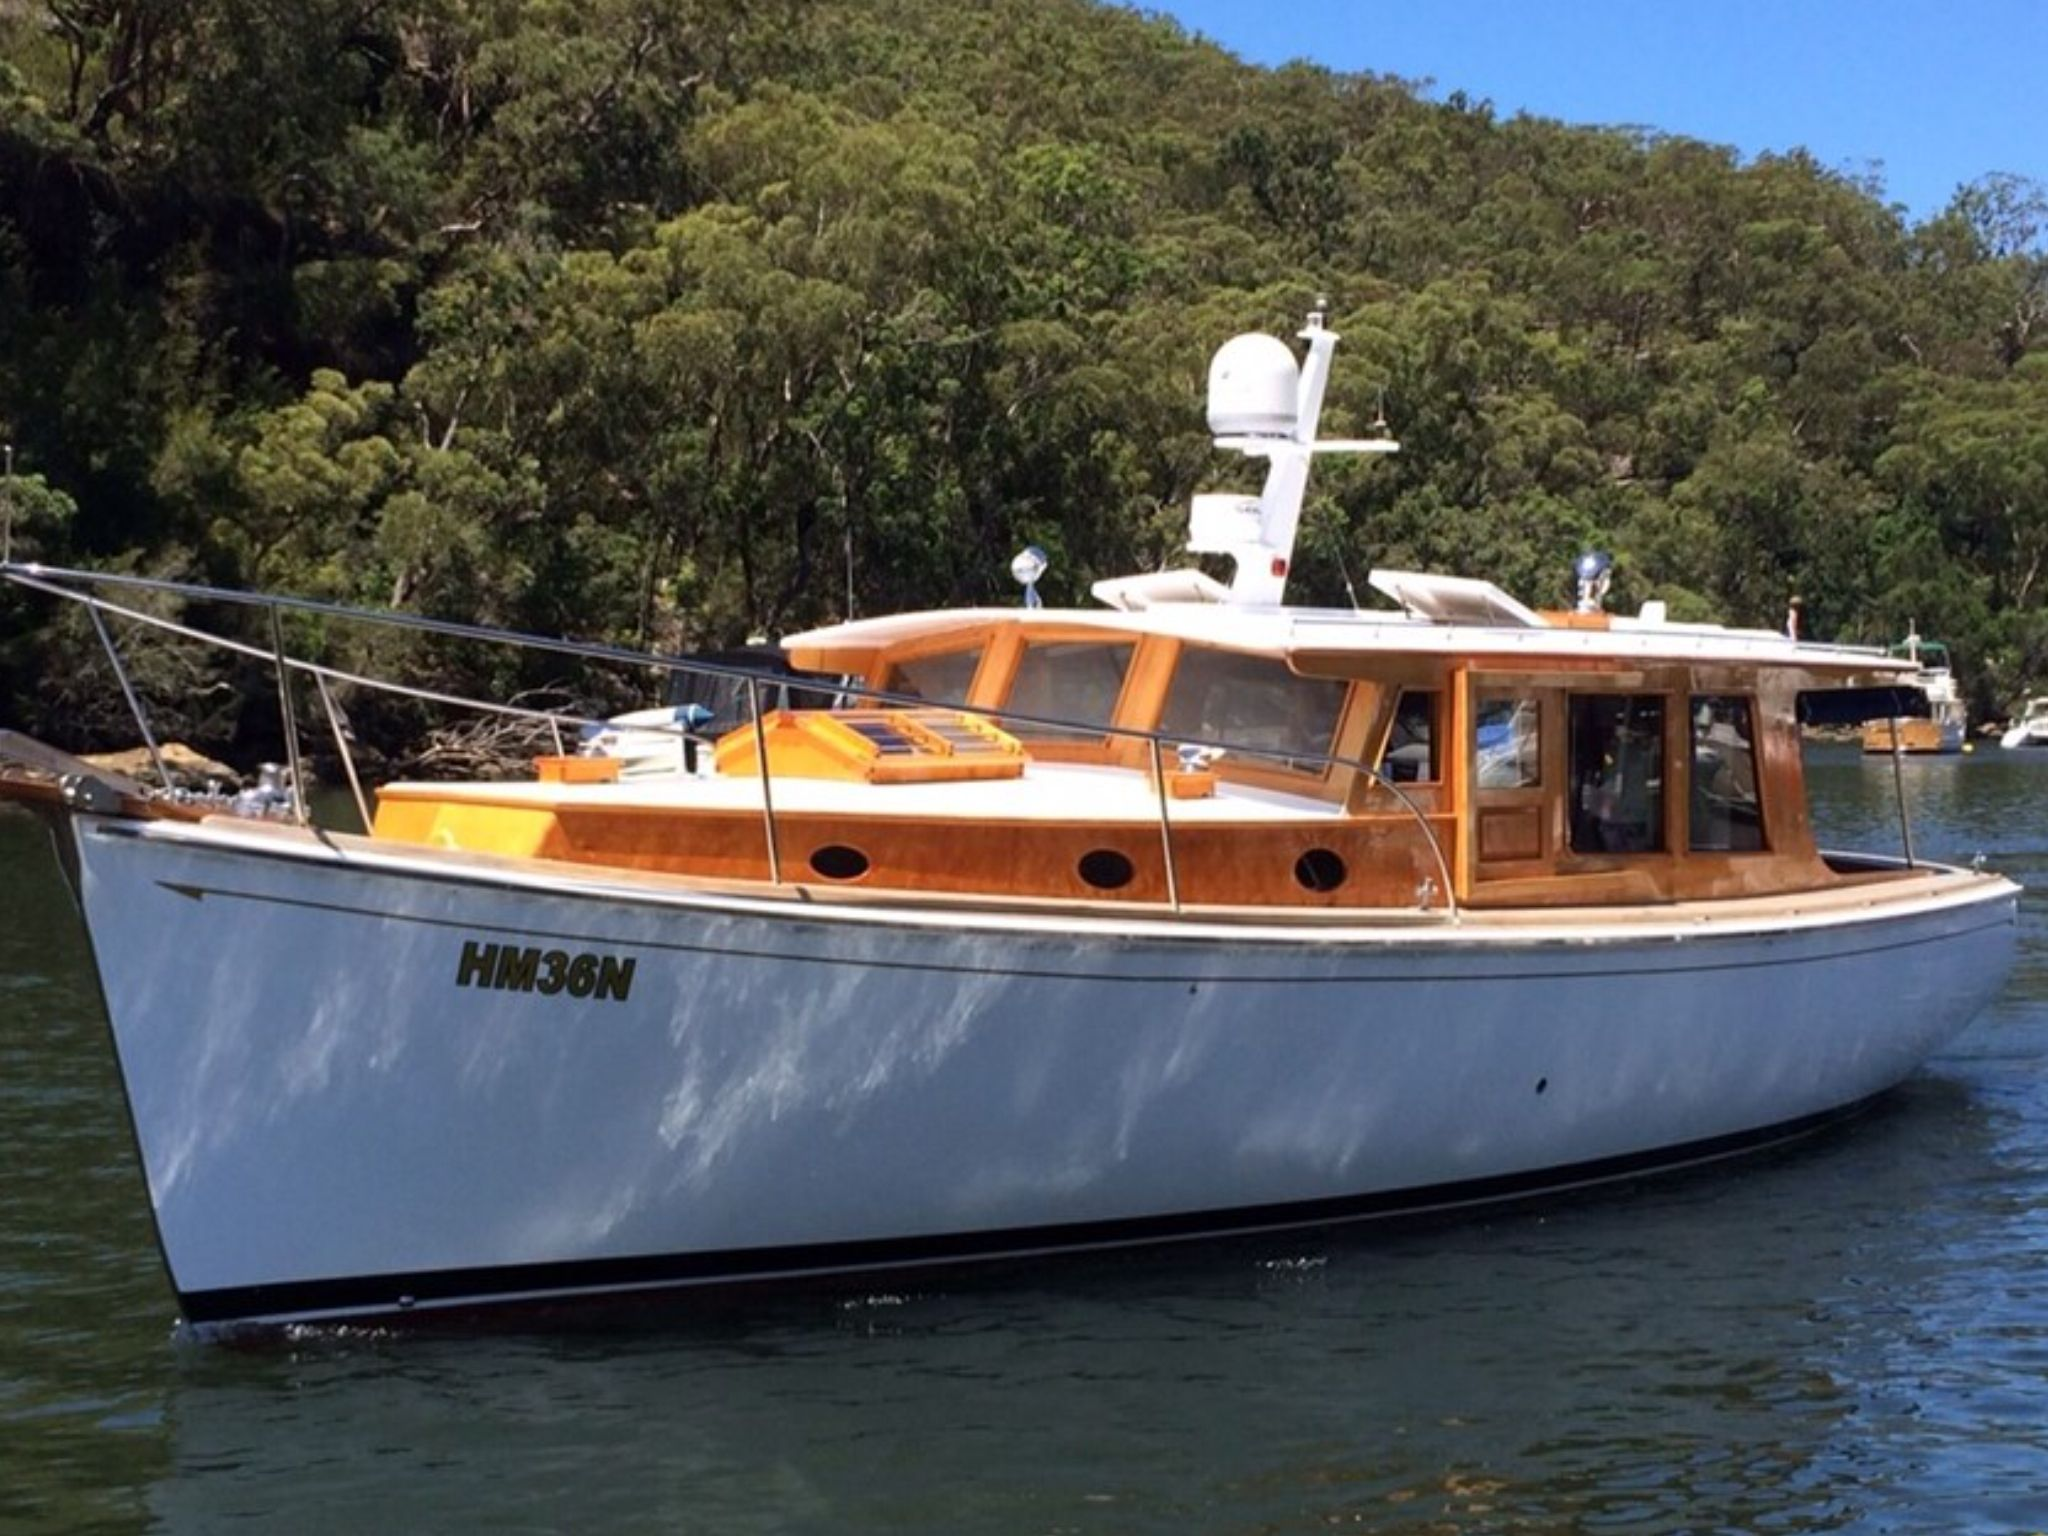 A 36 foot Huon Pine cruiser. Actually built in 2009 at the Wooden Boat Centre on the Franklin River in Tasmania.